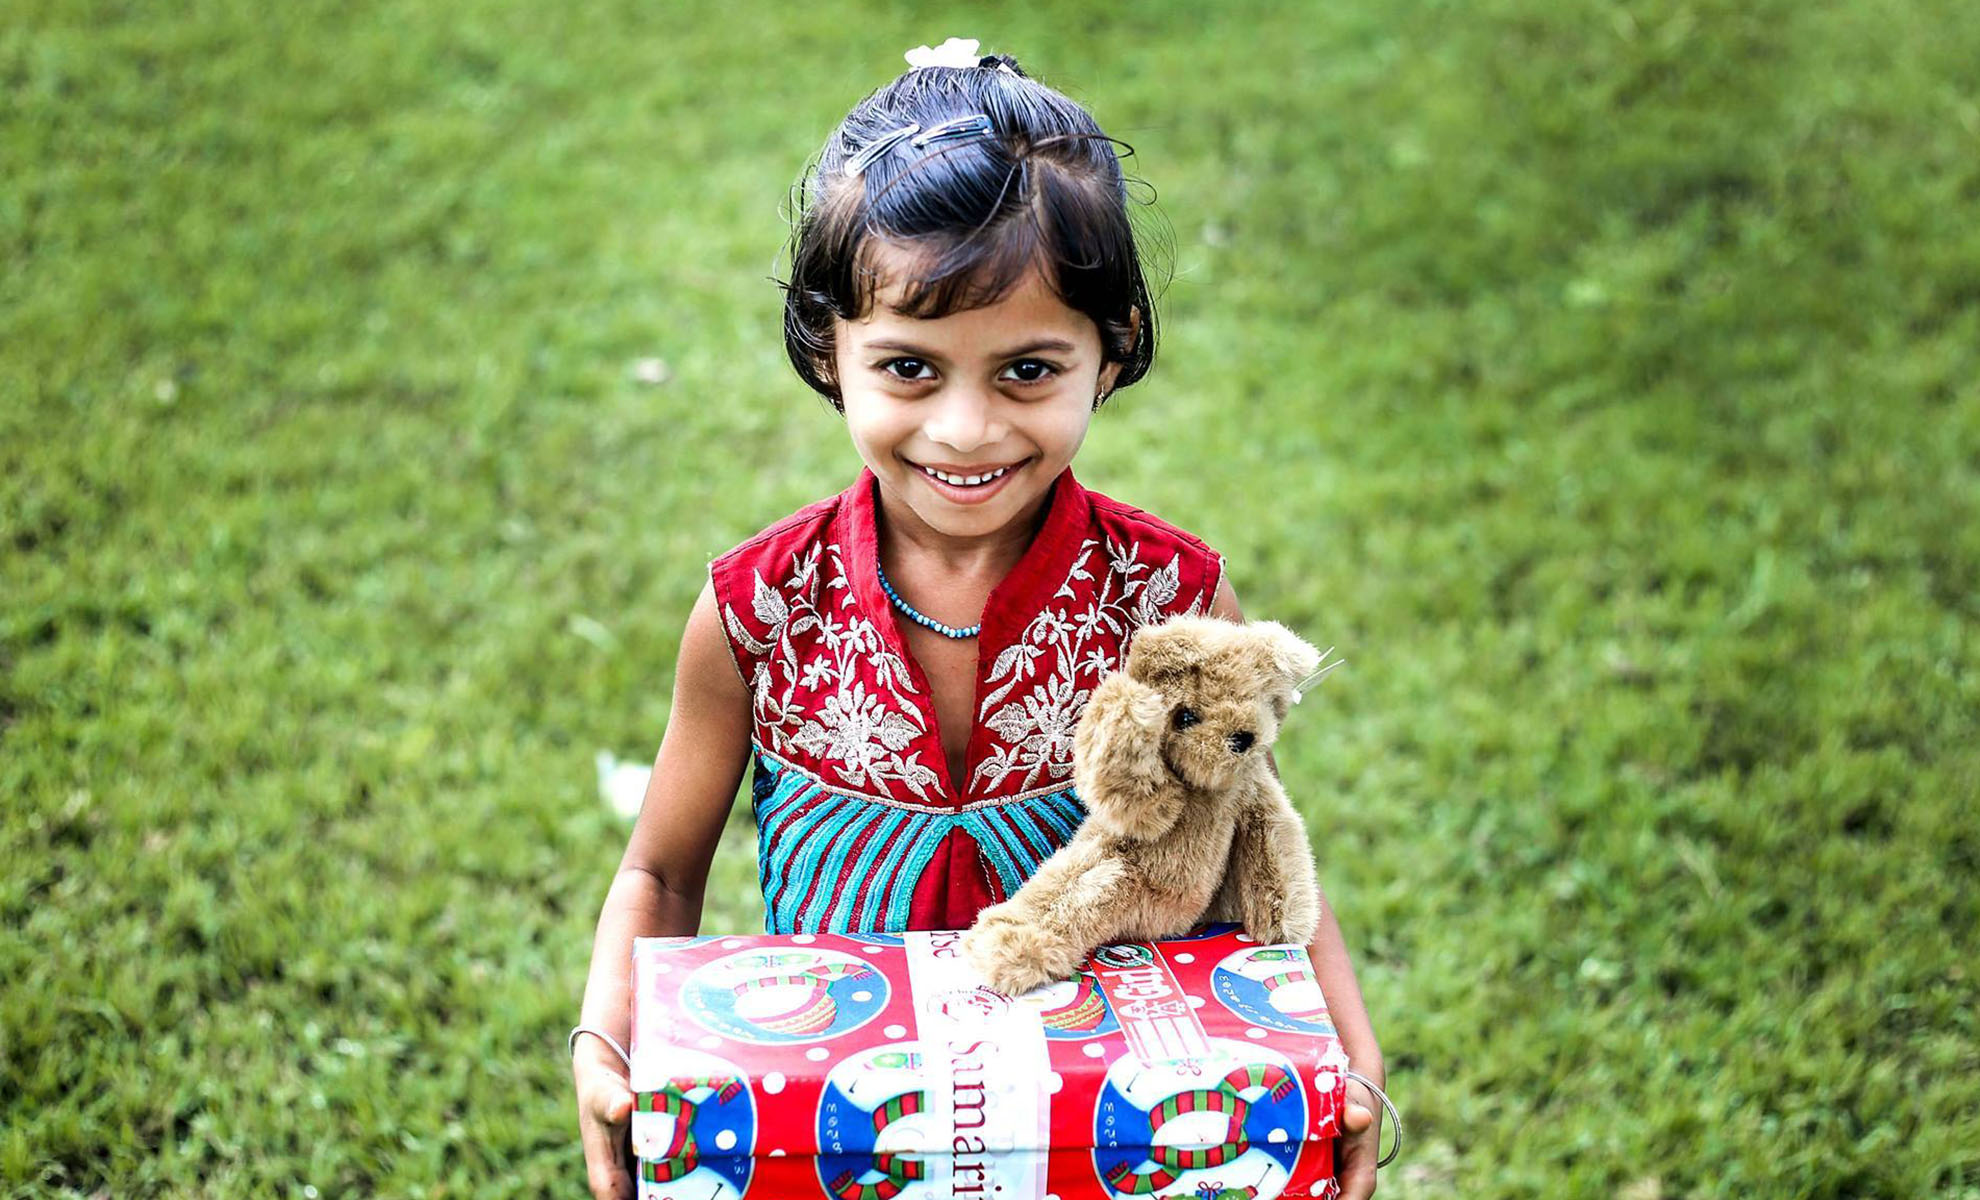 Girl with shoebox and teddy